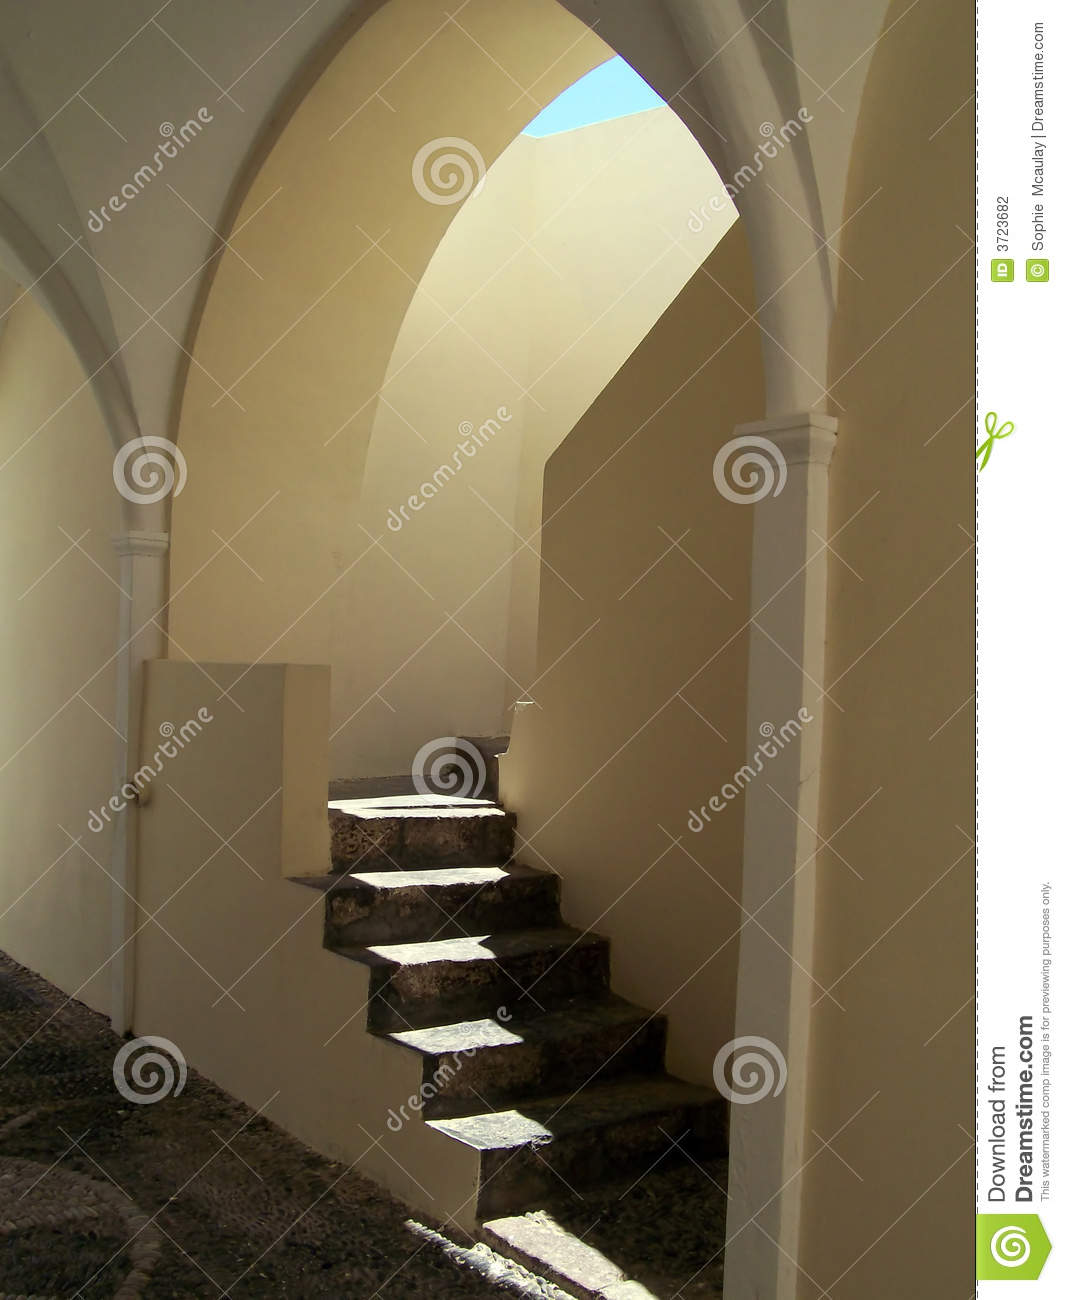 Heaven steps to